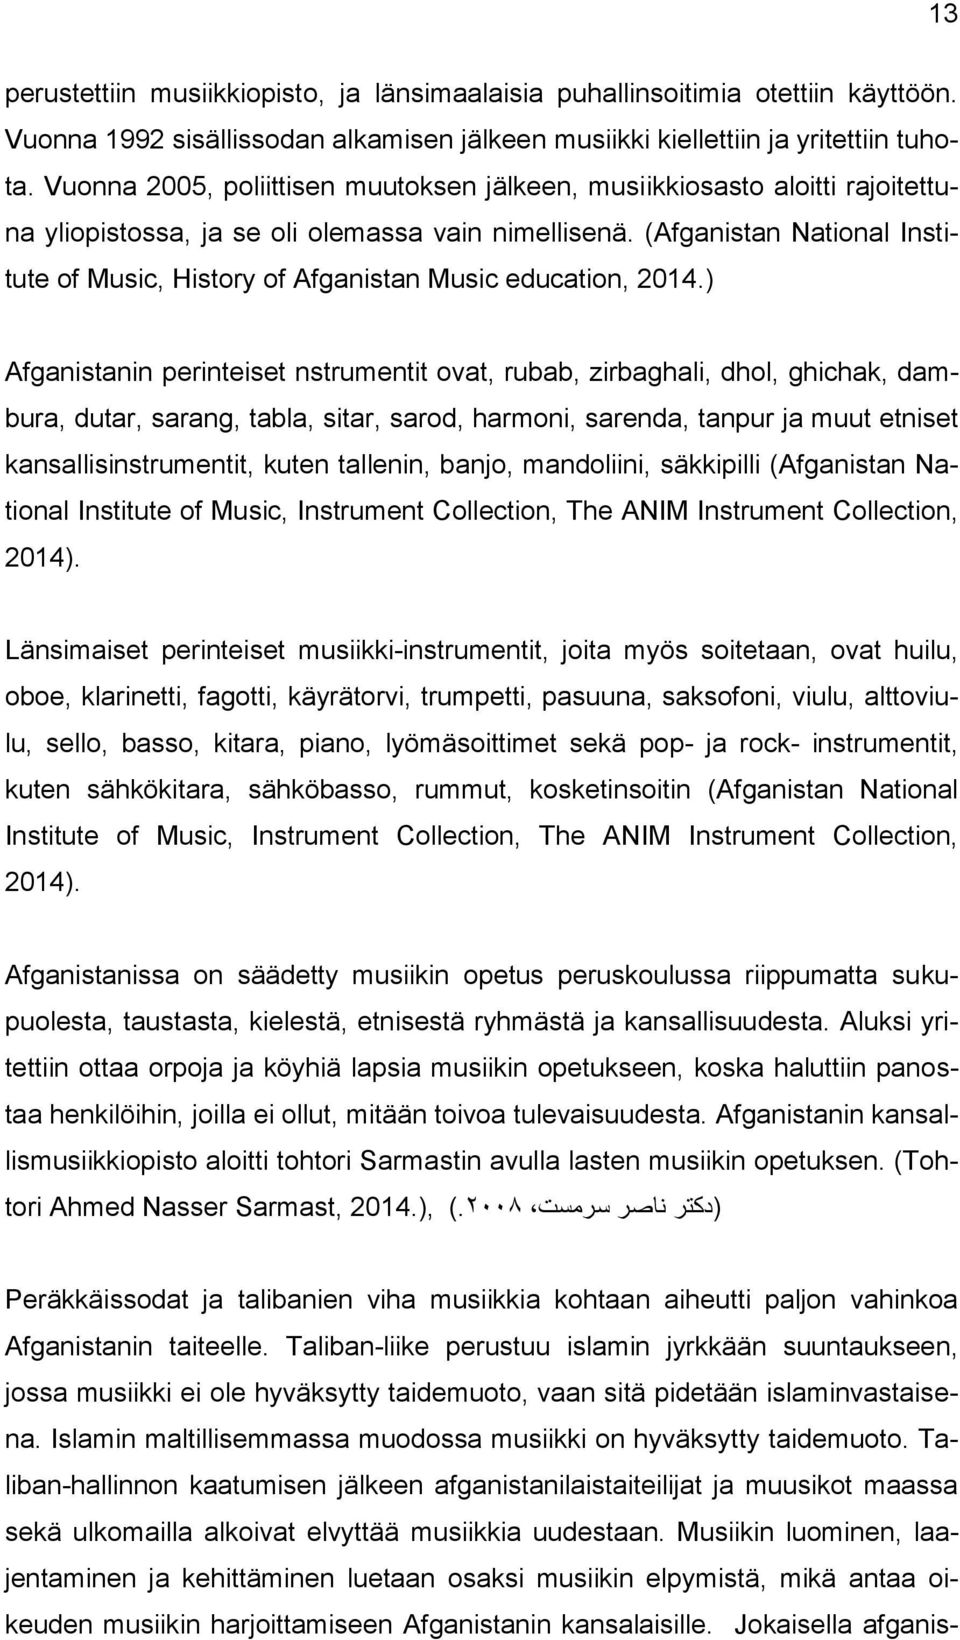 (Afganistan National Institute of Music, History of Afganistan Music education, 2014.